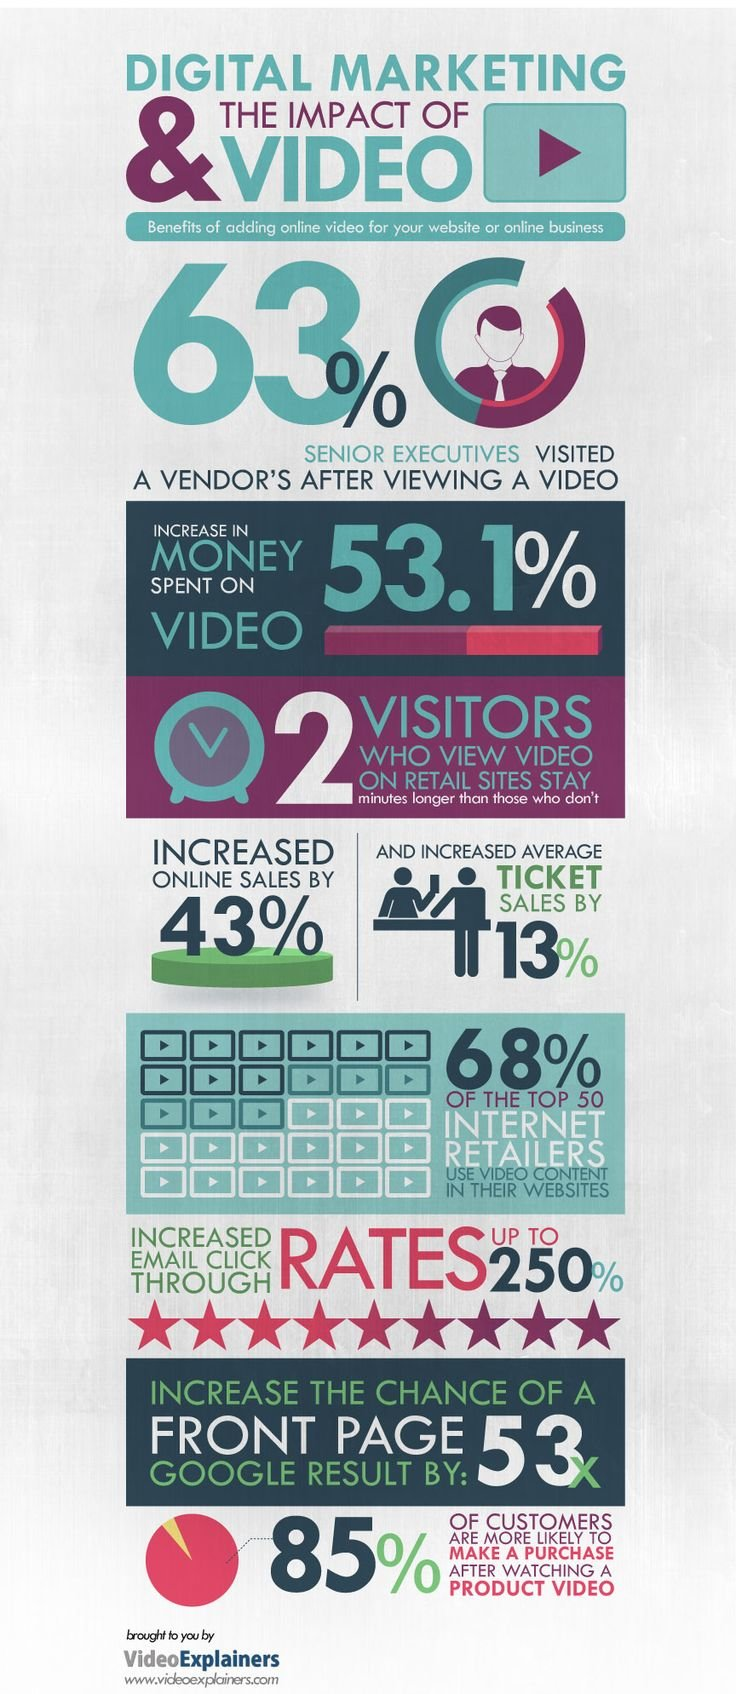 Digital Marketing and the impact of Video: Benefits of adding online video for your website or online business #infographic